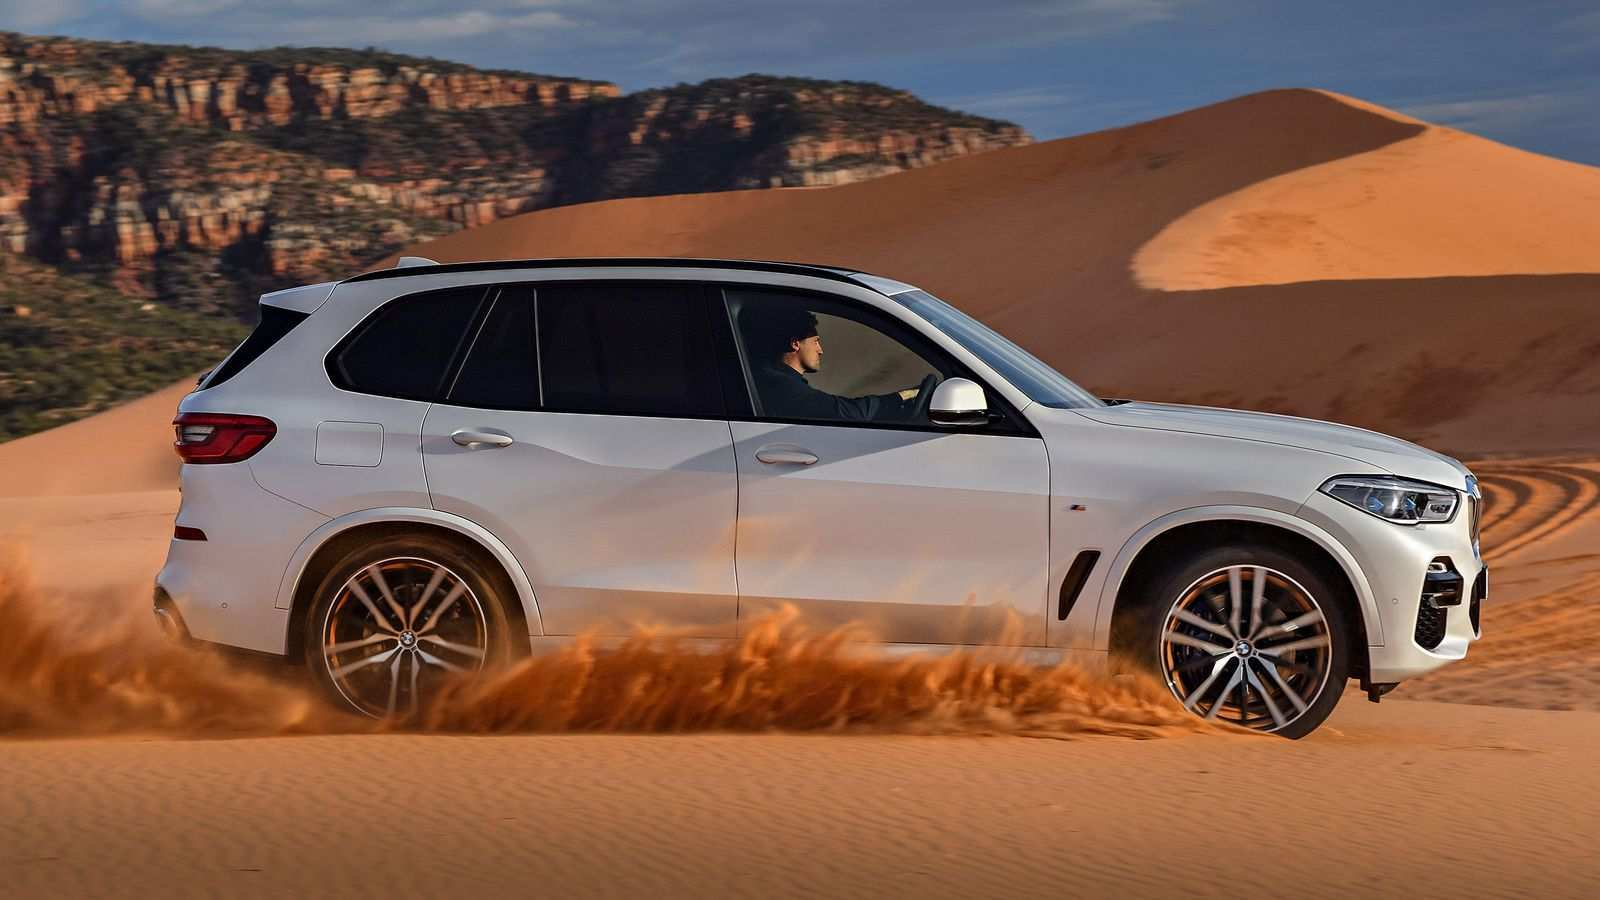 18 New 2020 Next Gen BMW X5 Suv Wallpaper by 2020 Next Gen BMW X5 Suv